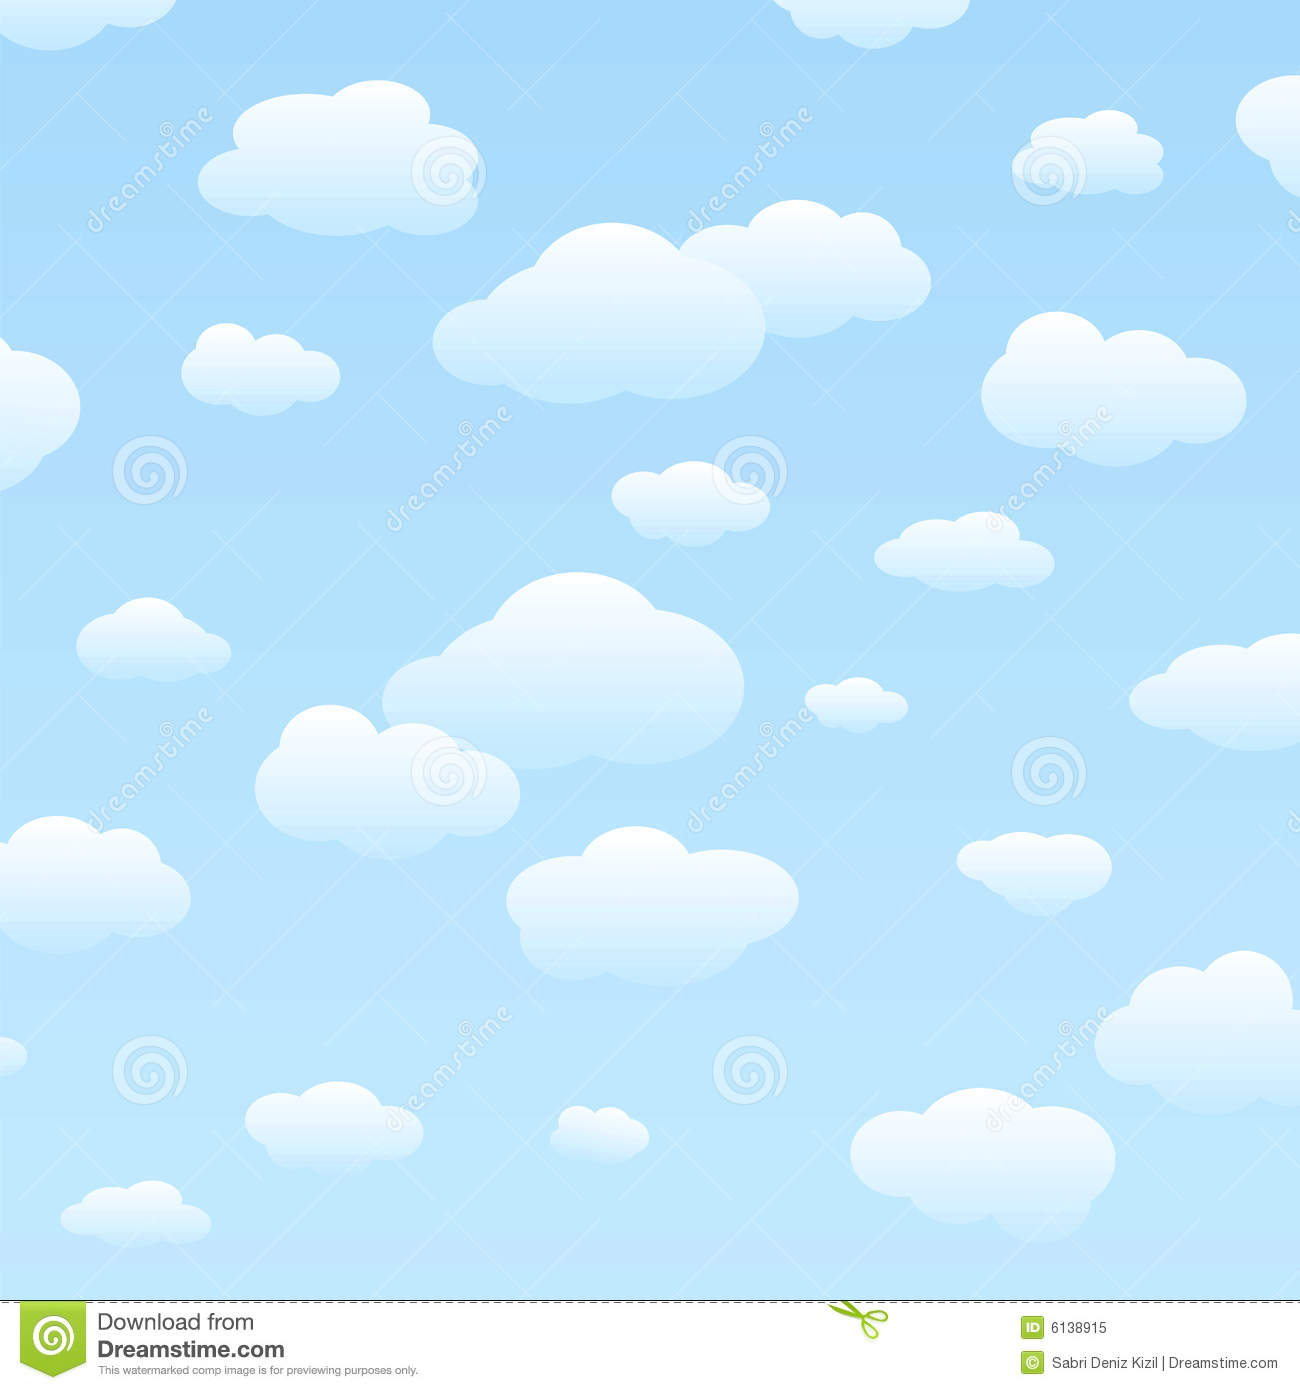 Sky clipart #12, Download drawings